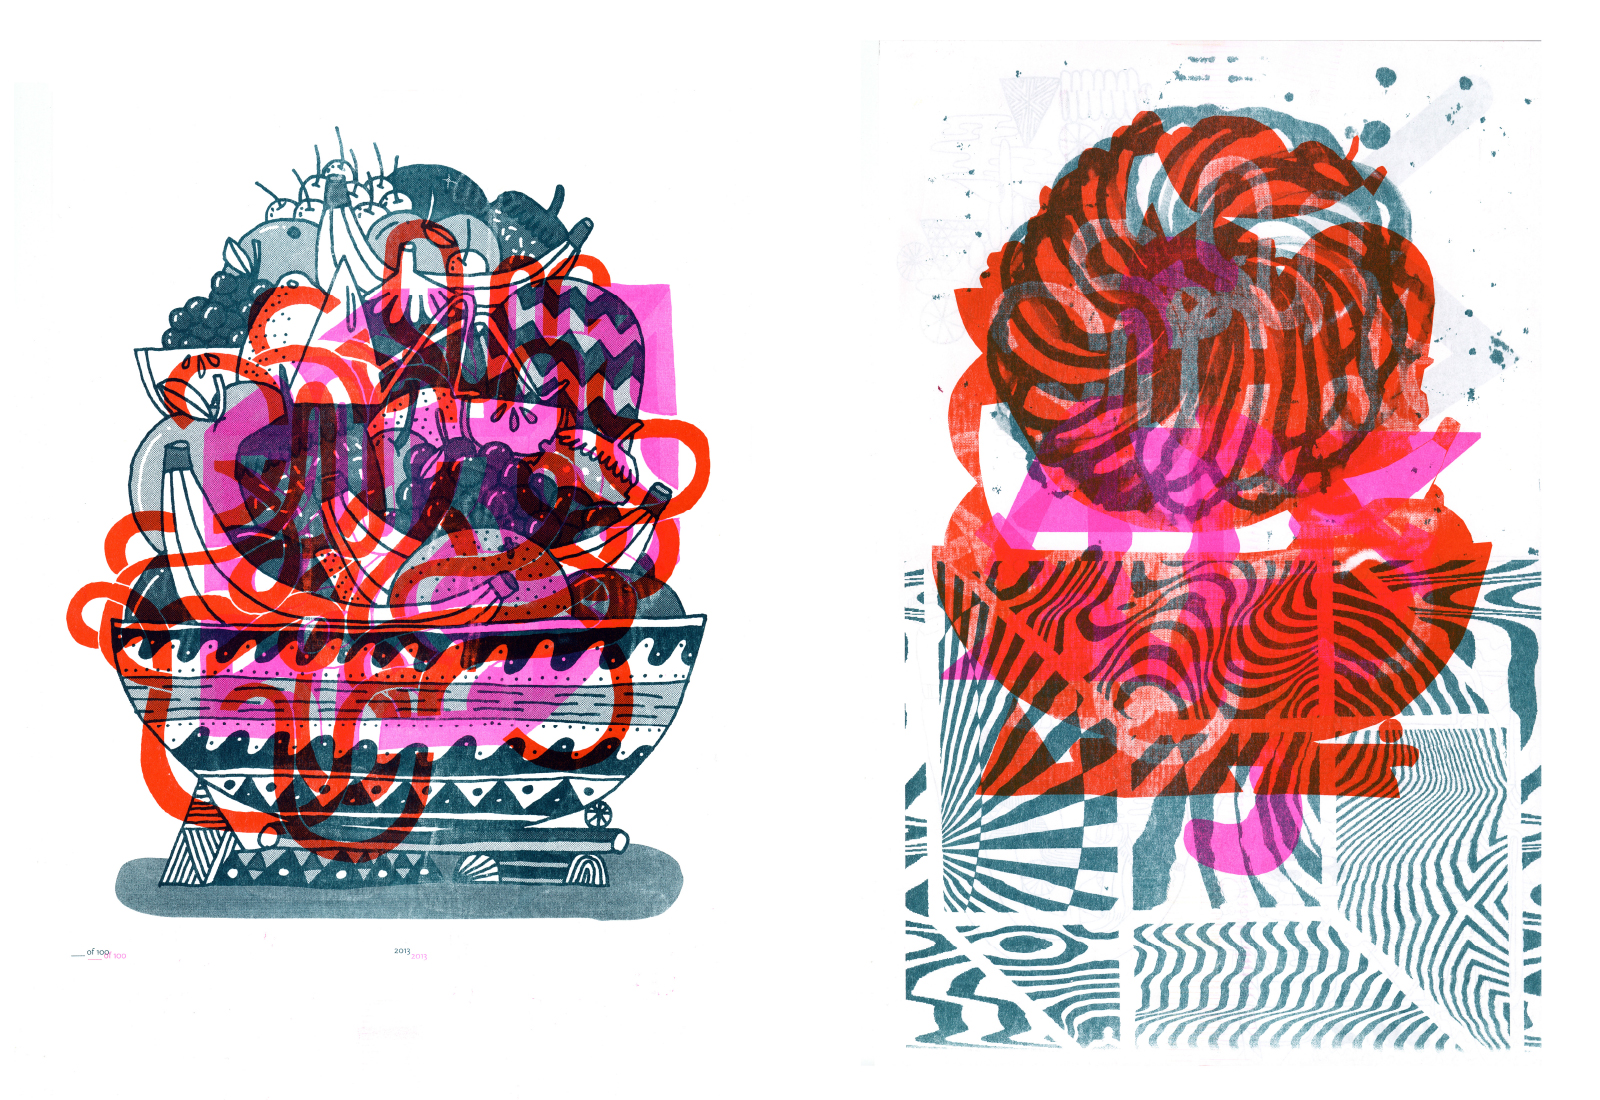 RISOGRAPH EXPERIMENTS | Mike Perry Studio